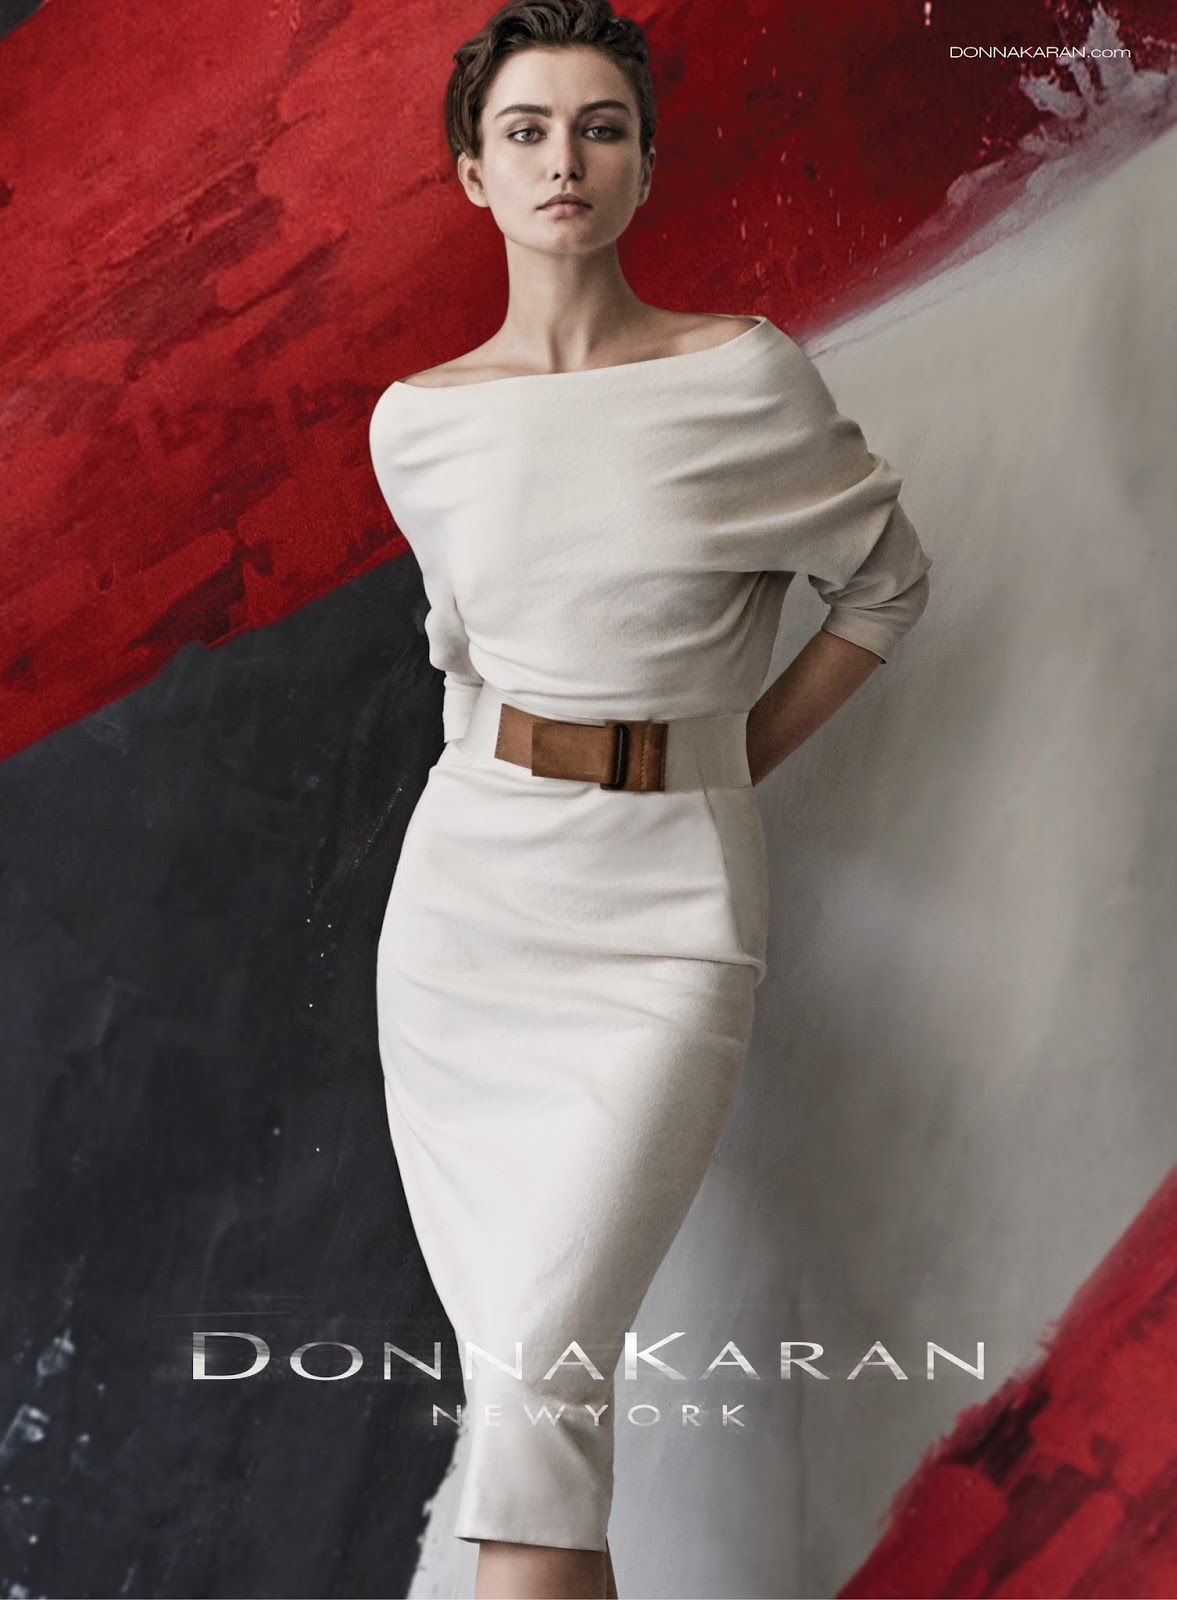 Karan donna spring summer campaign recommendations to wear in everyday in 2019